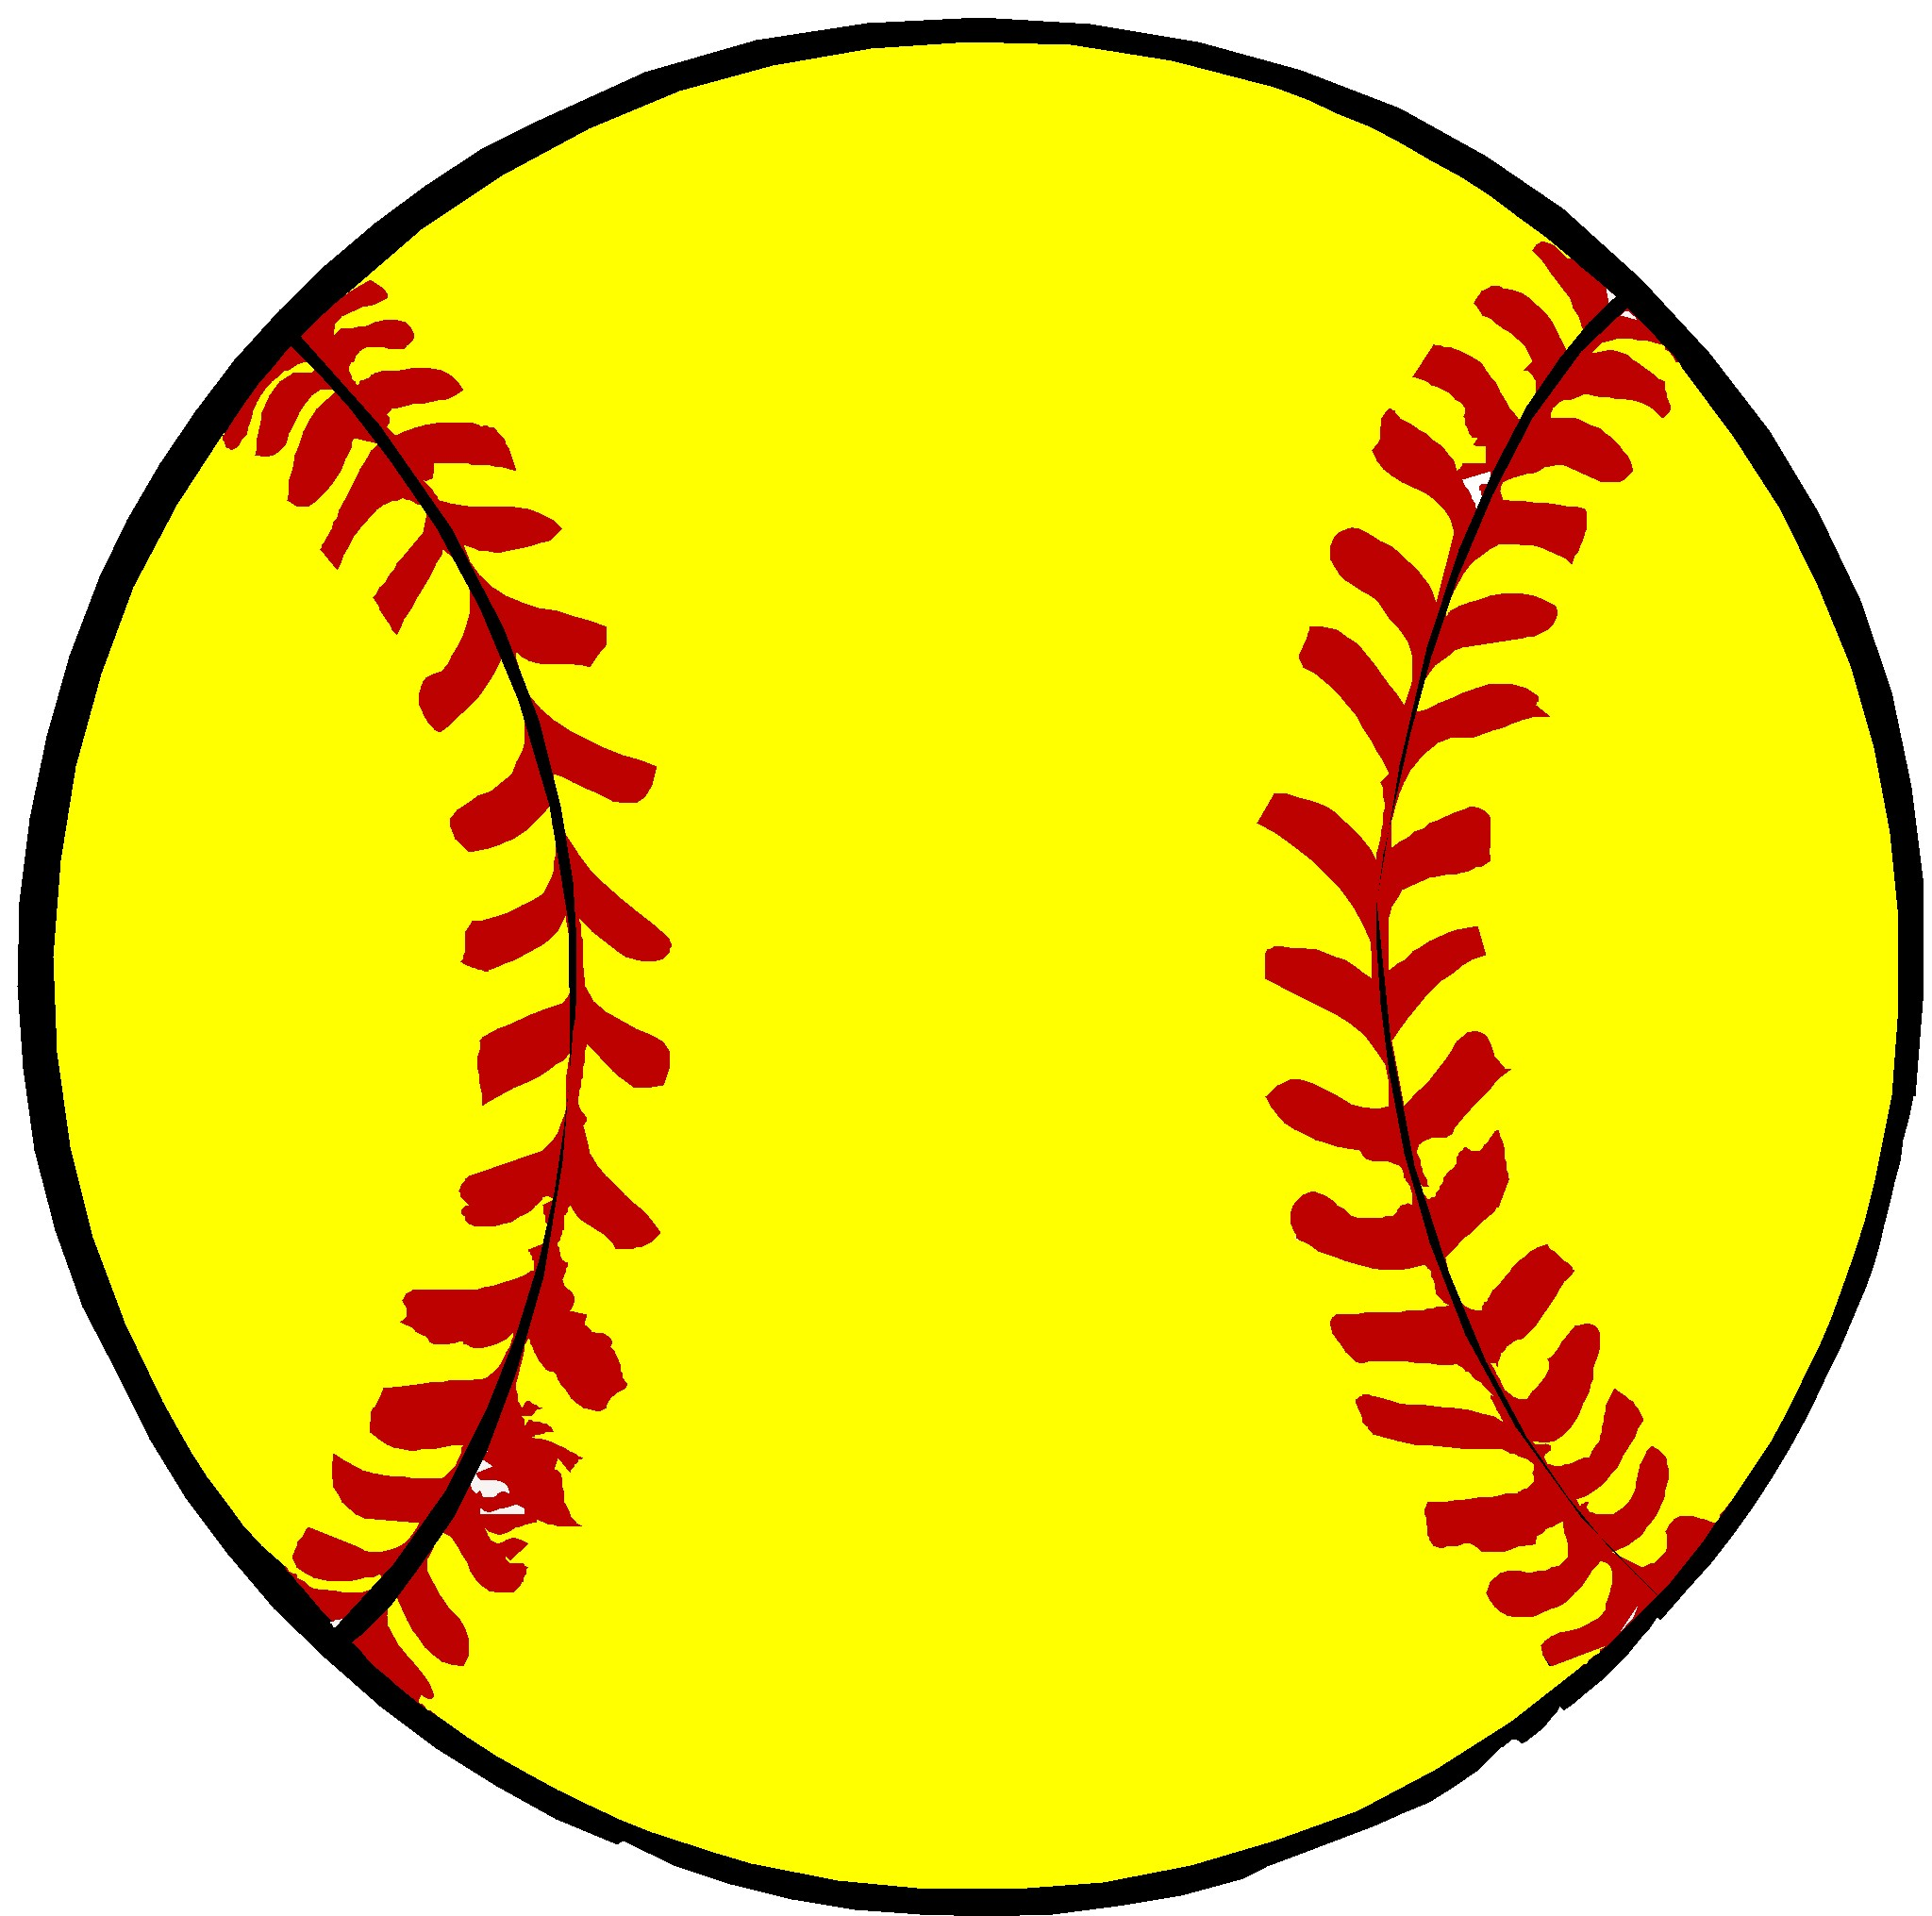 Cartoon Softball Pictures